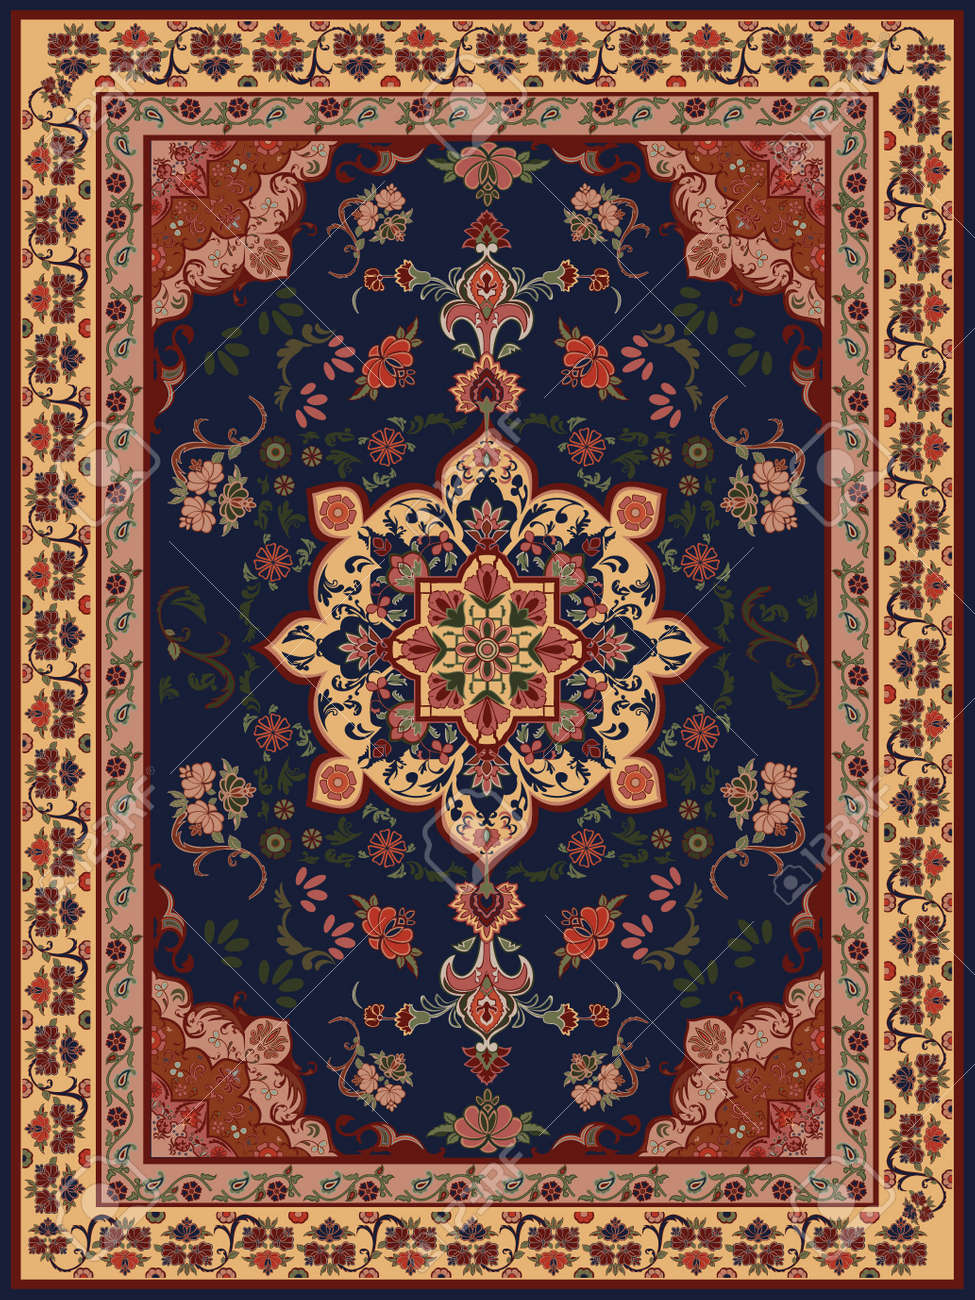 Carpet Design Inspiration Oriental Floral Carpet Design Royalty Free Cliparts Vectors And . Design Decoration